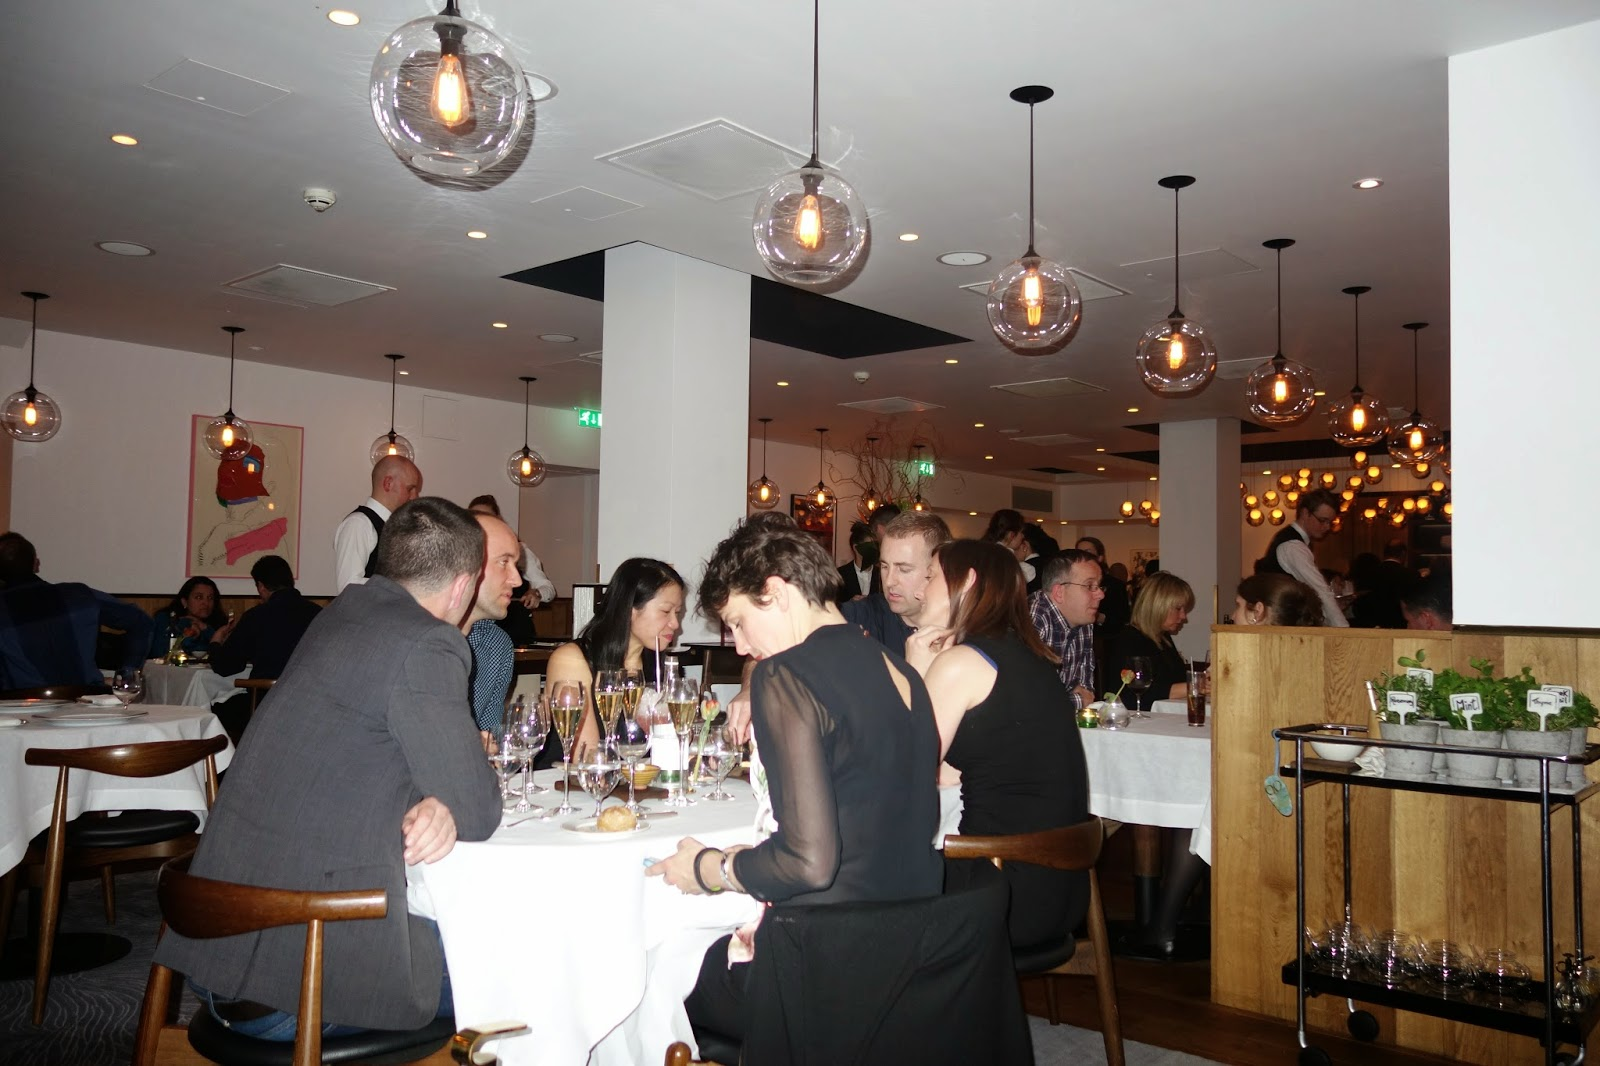 review of Pollen Street Social